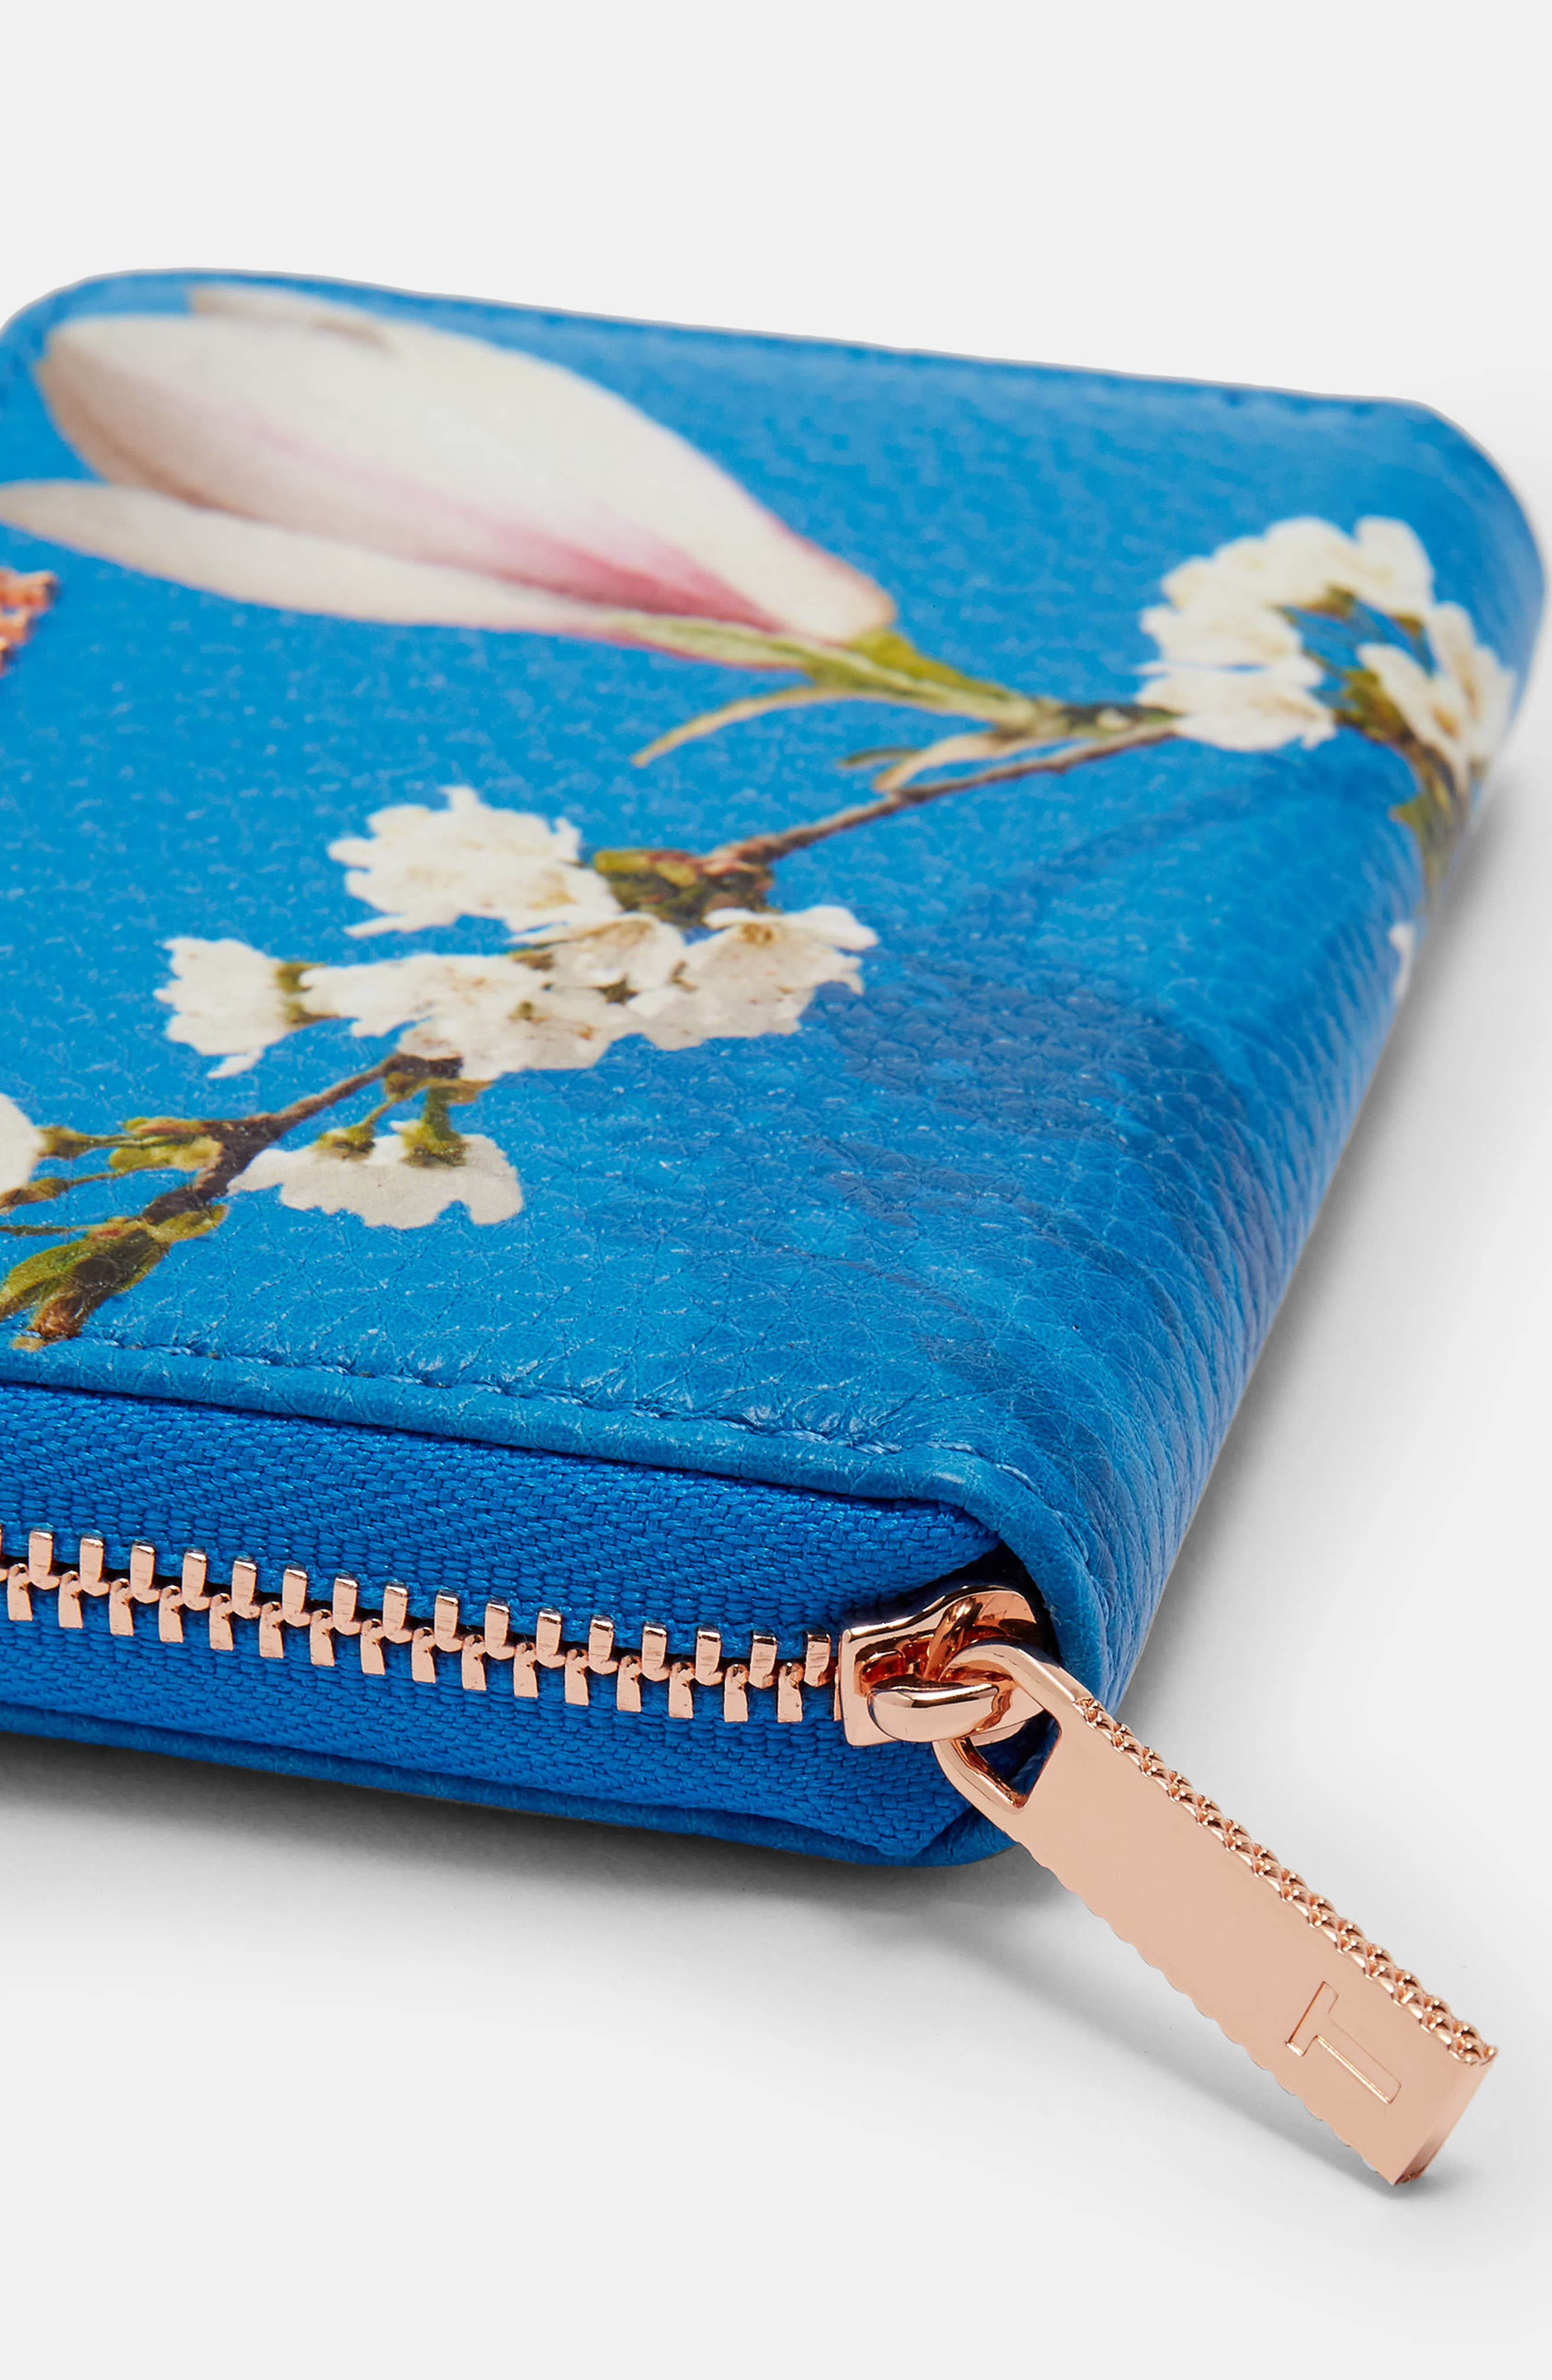 Corri Harmony Print Leather Zip Coin Purse,                             Alternate thumbnail 4, color,                             Bright Blue